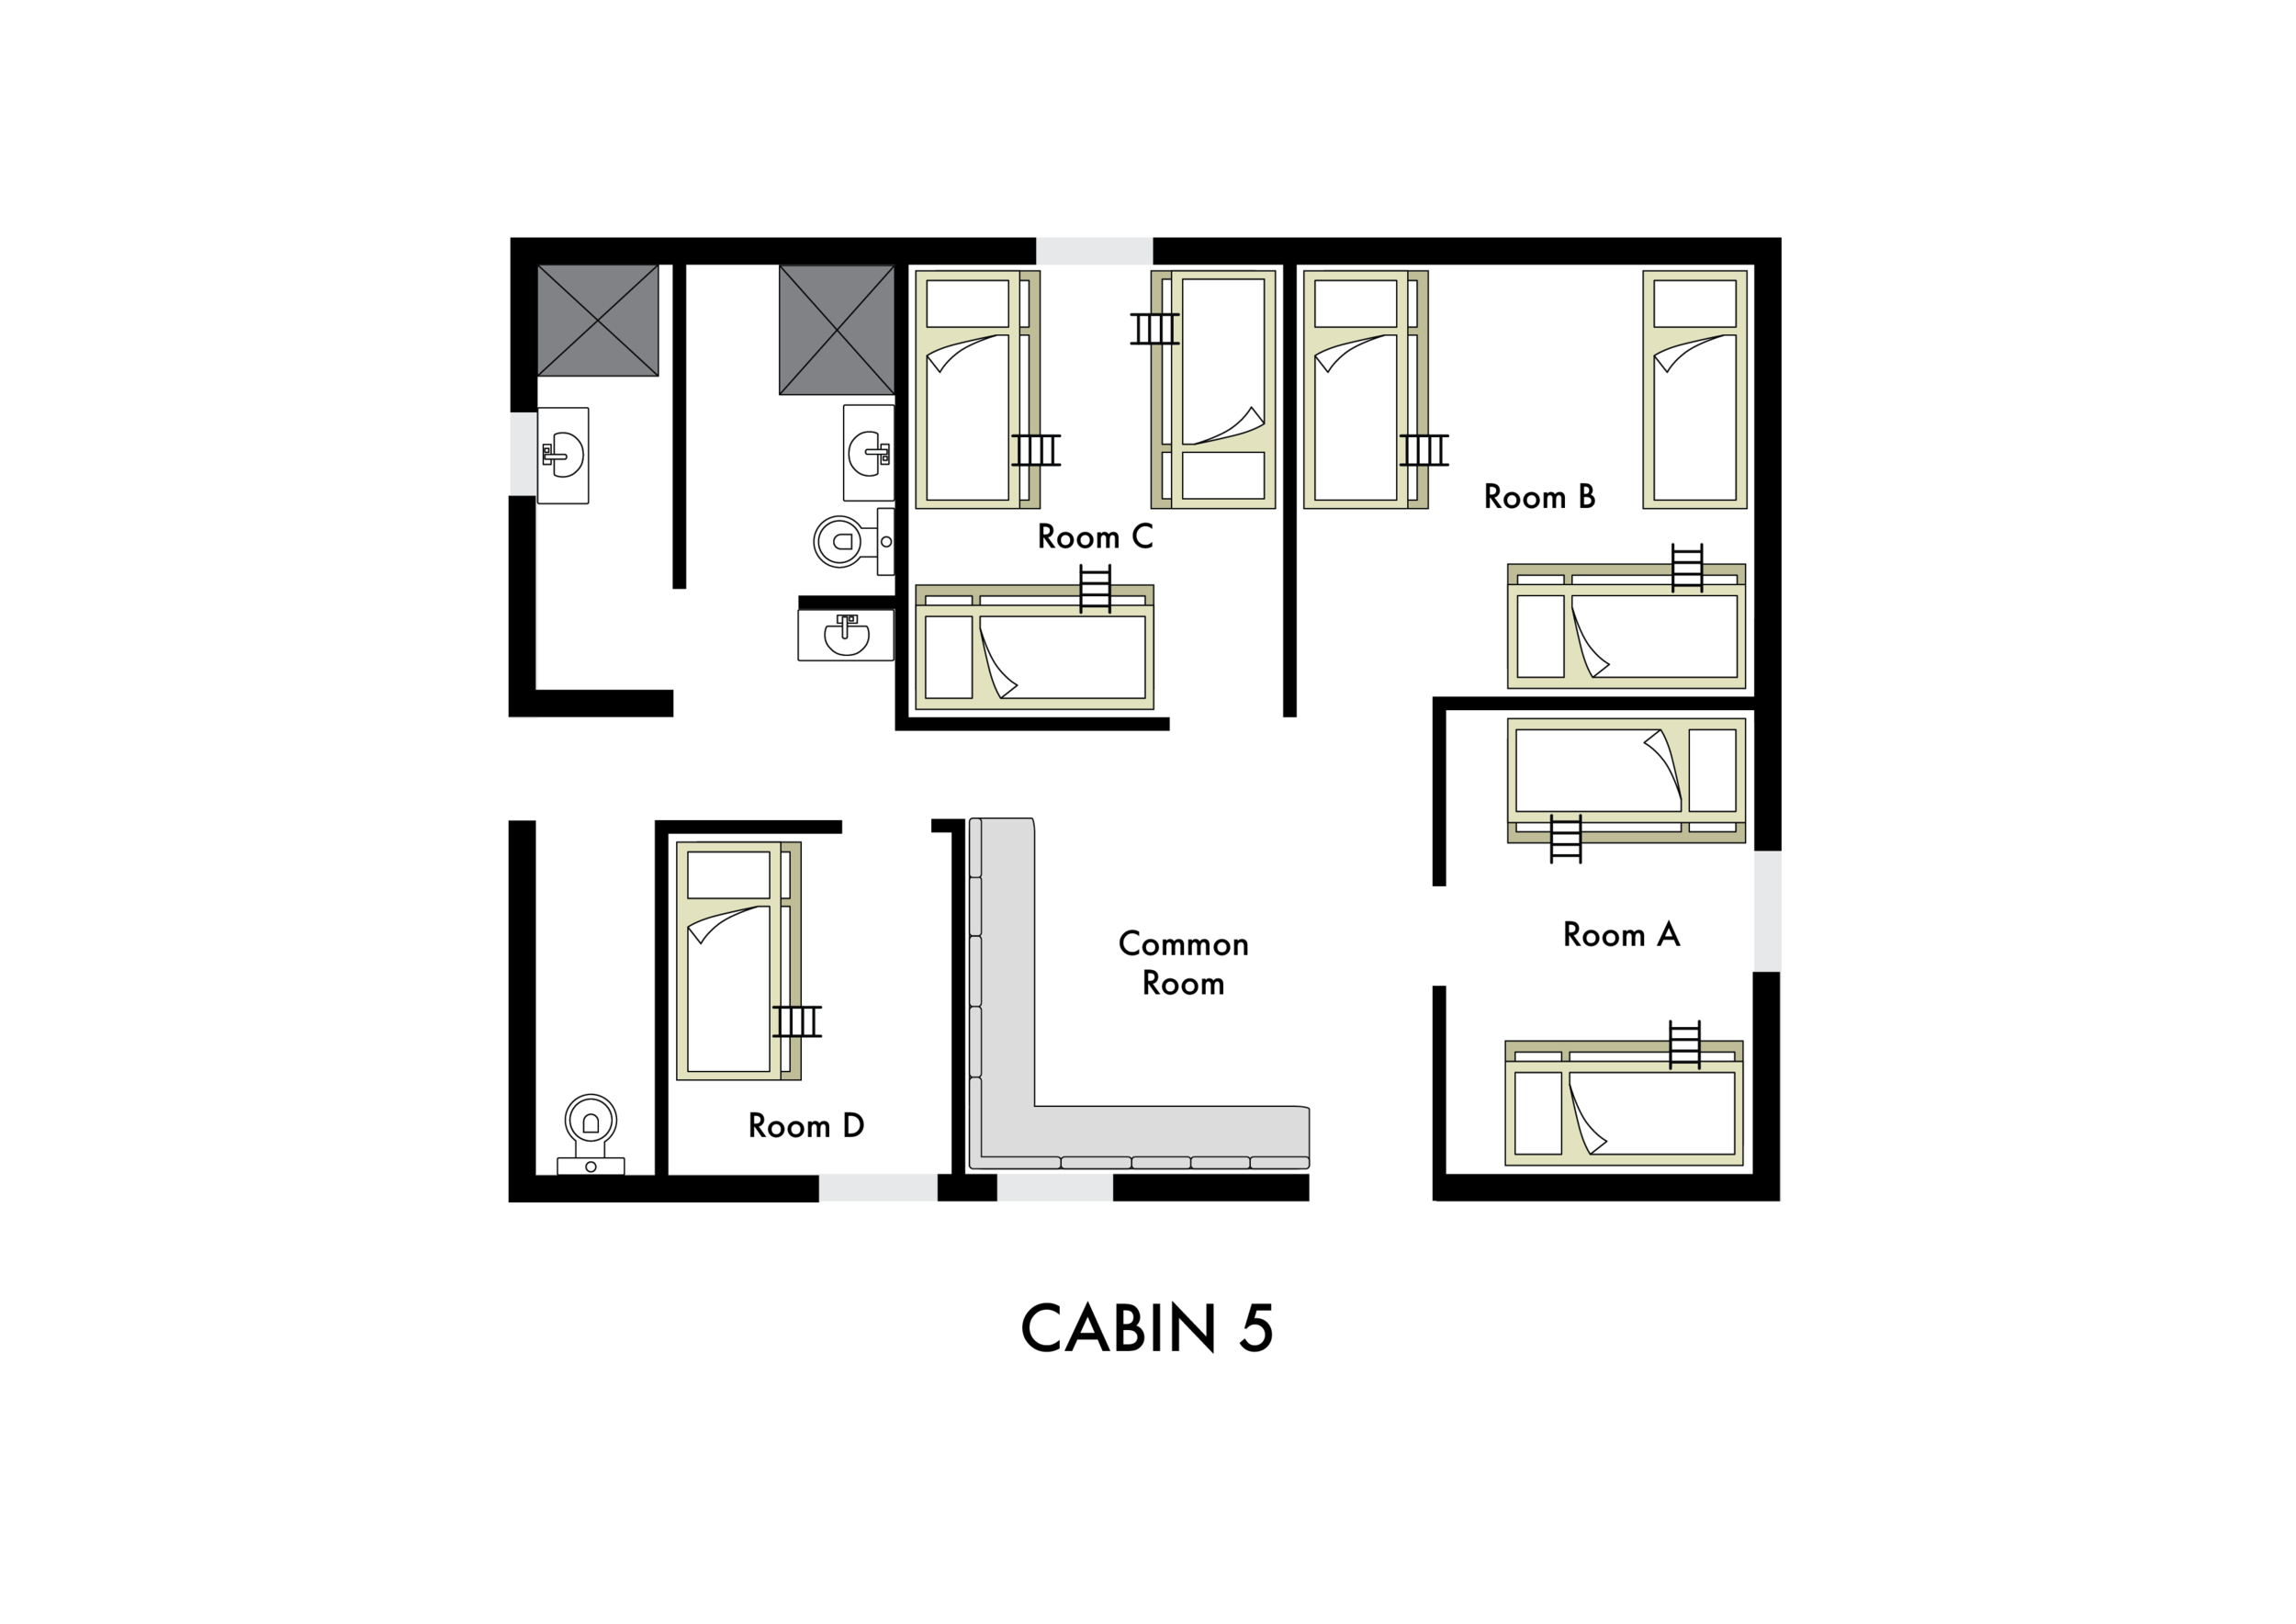 Cabin 5_02.png